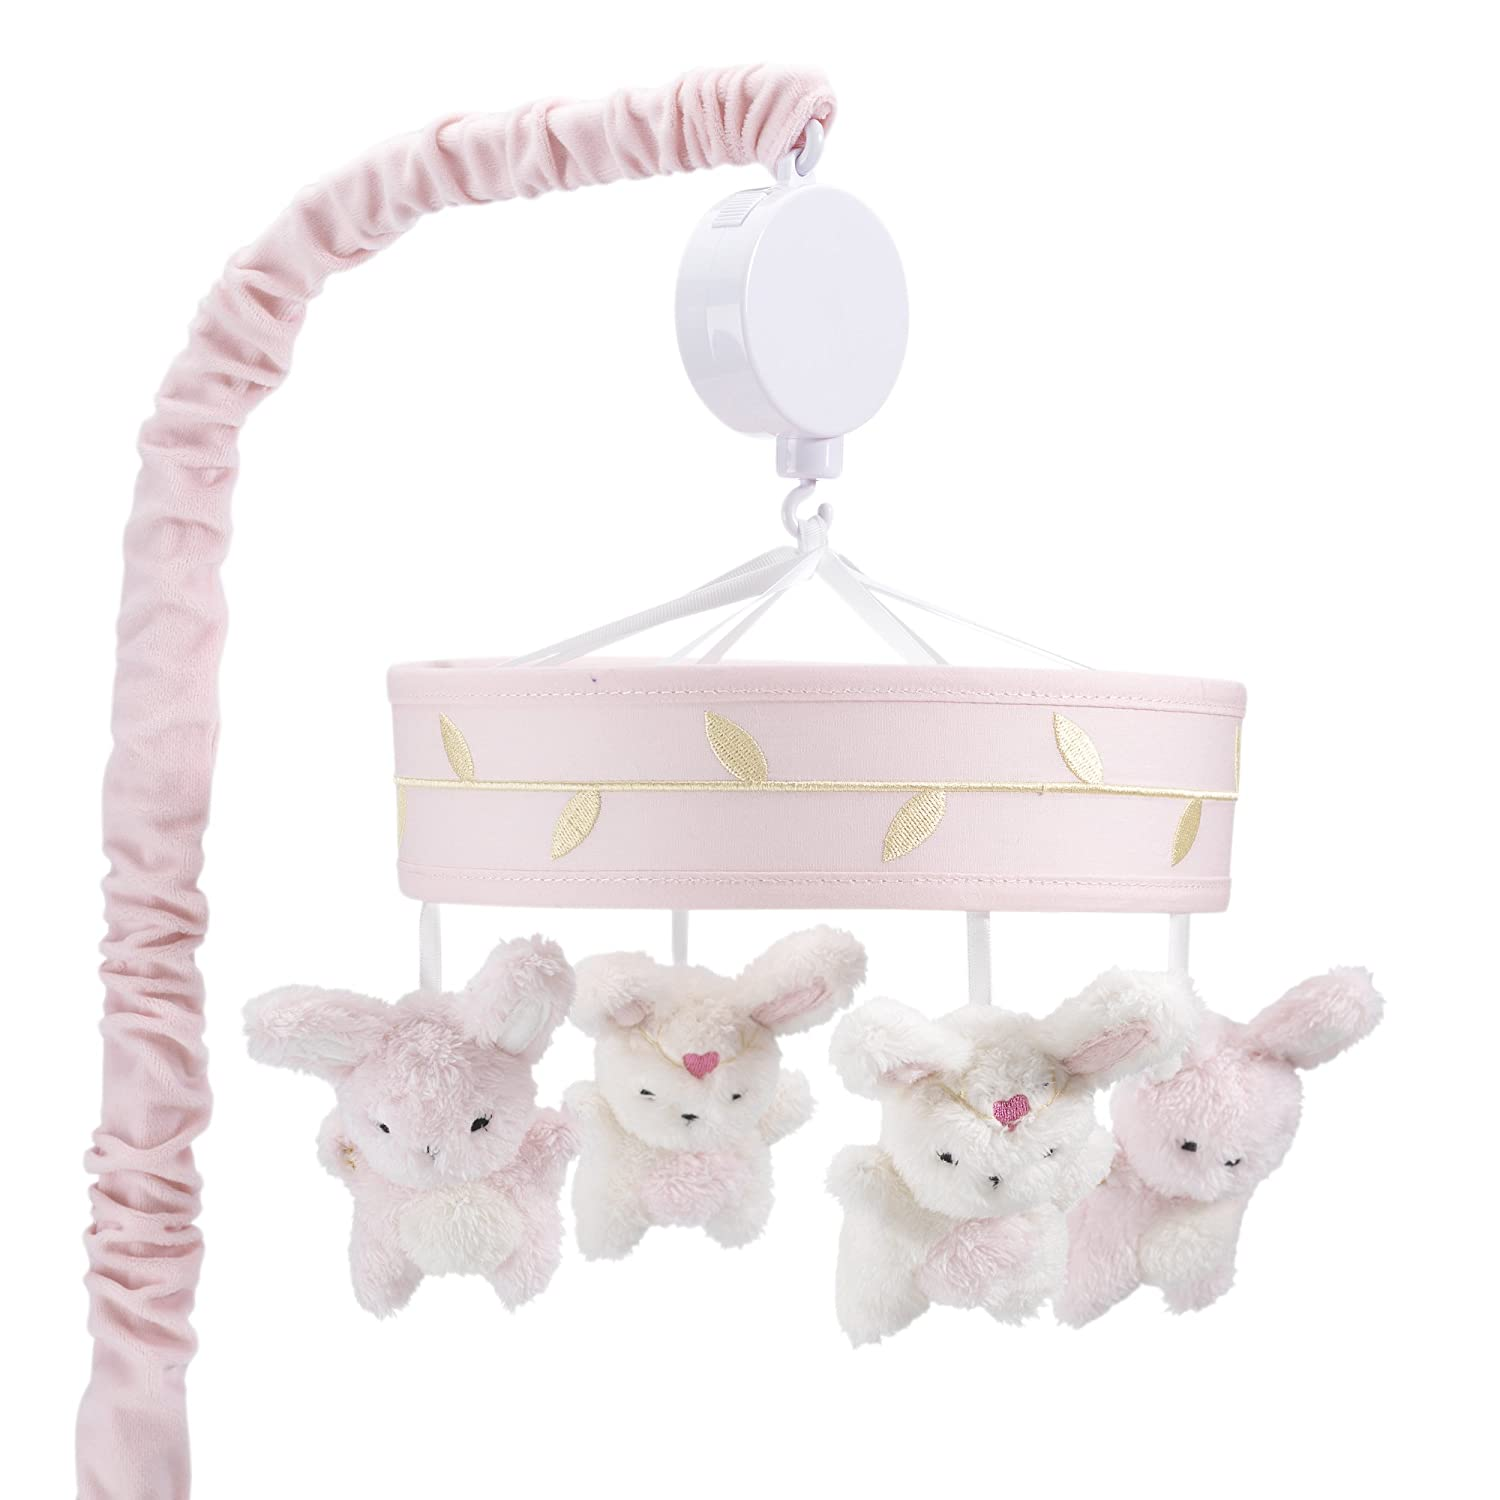 Lambs & Ivy Confetti Heart/Bunny Musical Mobile, Pink/Gold 670018